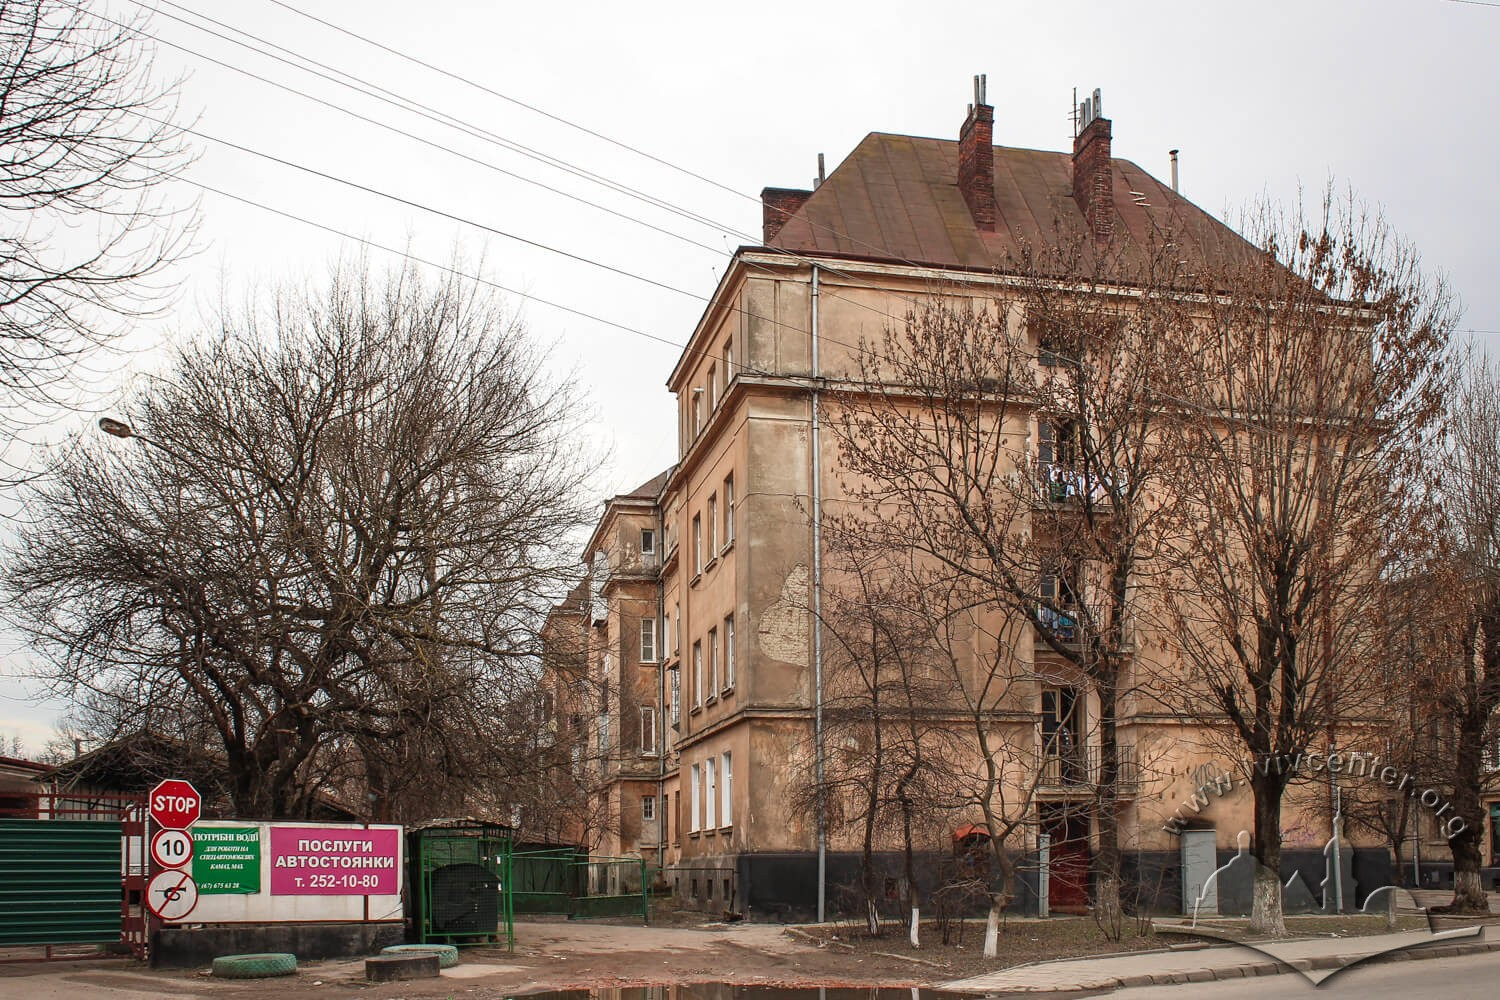 Vul. Donetska, 1. The apartment house, on its left – the entrance gate to the former City cleaning plant territory/Photo courtesy of Olha Zarechnyuk, 2016